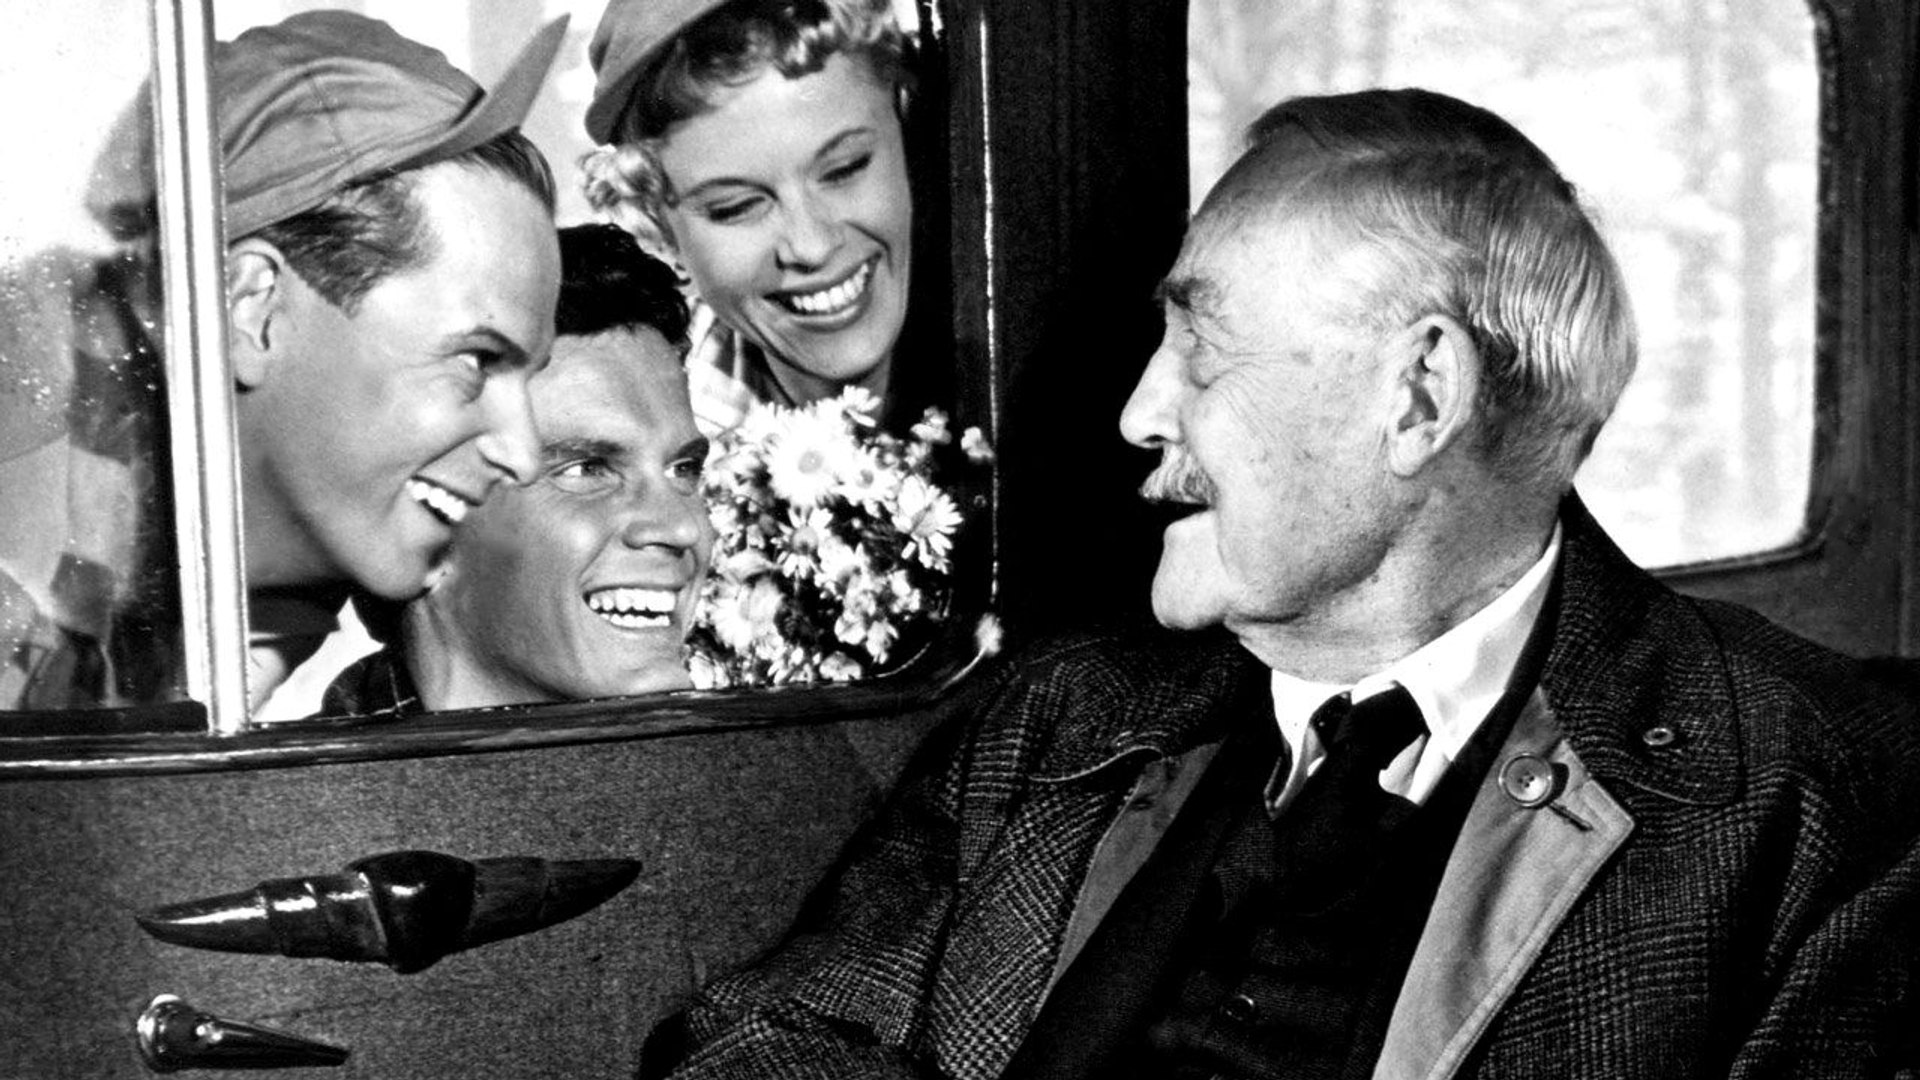 Watch Wild Strawberries Full Movie HD 1080p,  Wild Strawberries Full Movie Torrent,  Wild Strawberri